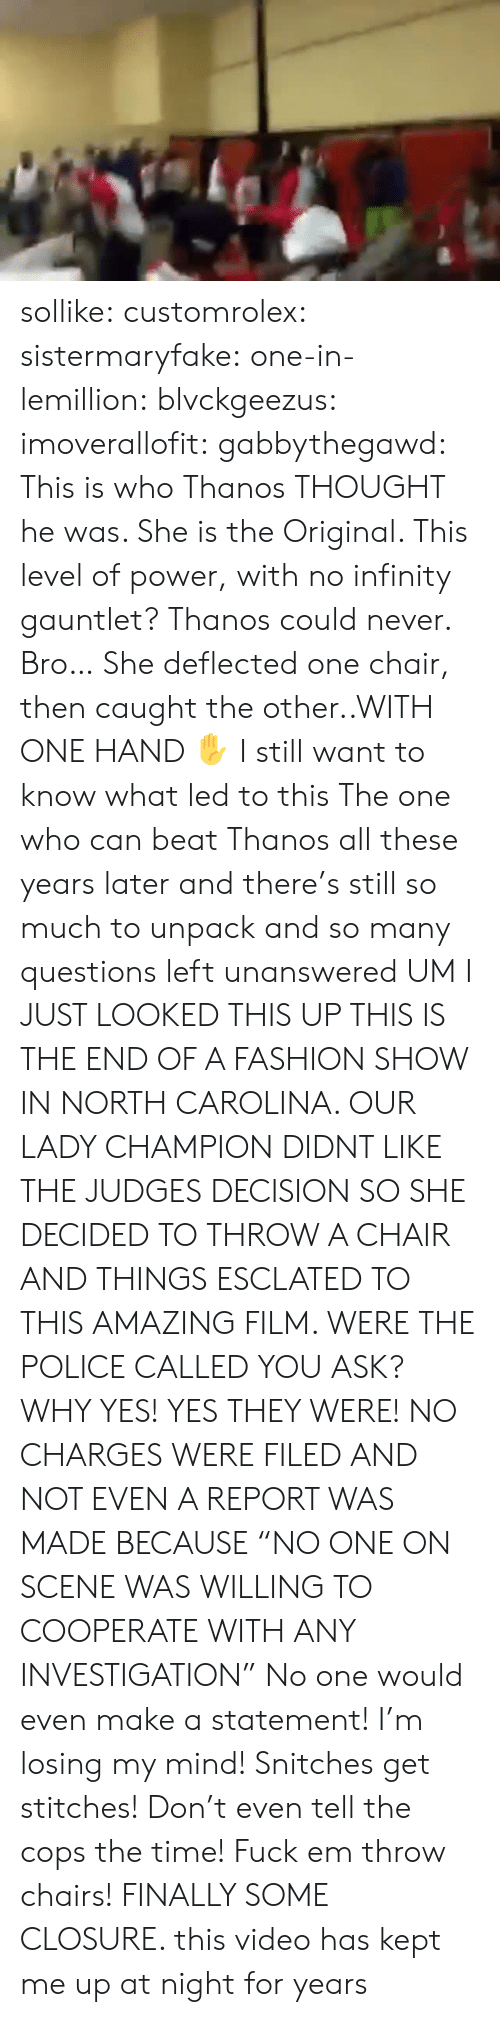 "Fashion, Police, and Stitches: sollike: customrolex:   sistermaryfake:  one-in-lemillion:  blvckgeezus:  imoverallofit:   gabbythegawd: This is who Thanos THOUGHT he was. She is the Original. This level of power, with no infinity gauntlet? Thanos could never.  Bro… She deflected one chair, then caught the other..WITH ONE HAND ✋   I still want to know what led to this    The one who can beat Thanos   all these years later and there's still so much to unpack and so many questions left unanswered   UM I JUST LOOKED THIS UP  THIS IS THE END OF A FASHION SHOW IN NORTH CAROLINA. OUR LADY CHAMPION DIDNT LIKE THE JUDGES DECISION SO SHE DECIDED TO THROW A CHAIR AND THINGS ESCLATED TO THIS AMAZING FILM.  WERE THE POLICE CALLED YOU ASK? WHY YES! YES THEY WERE!  NO CHARGES WERE FILED AND NOT EVEN A REPORT WAS MADE BECAUSE ""NO ONE ON SCENE WAS WILLING TO COOPERATE WITH ANY INVESTIGATION""  No one would even make a statement! I'm losing my mind! Snitches get stitches! Don't even tell the cops the time! Fuck em throw chairs!   FINALLY SOME CLOSURE. this video has kept me up at night for years"